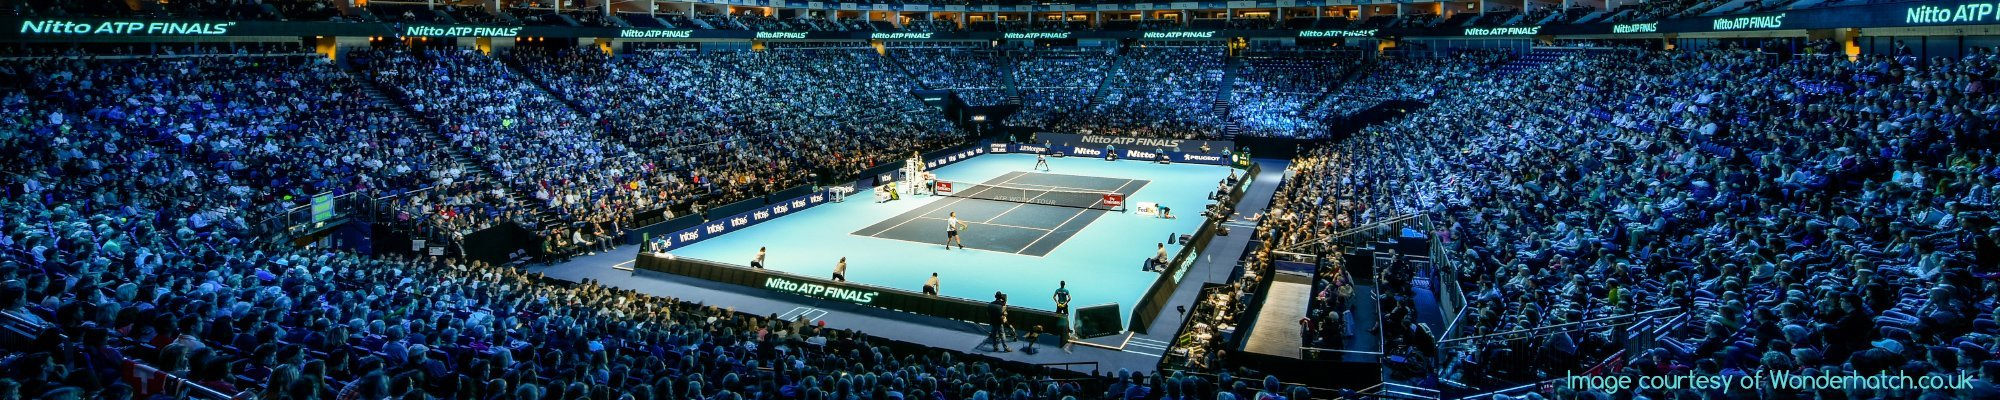 2018 Nitto ATP Finals NOV 16th